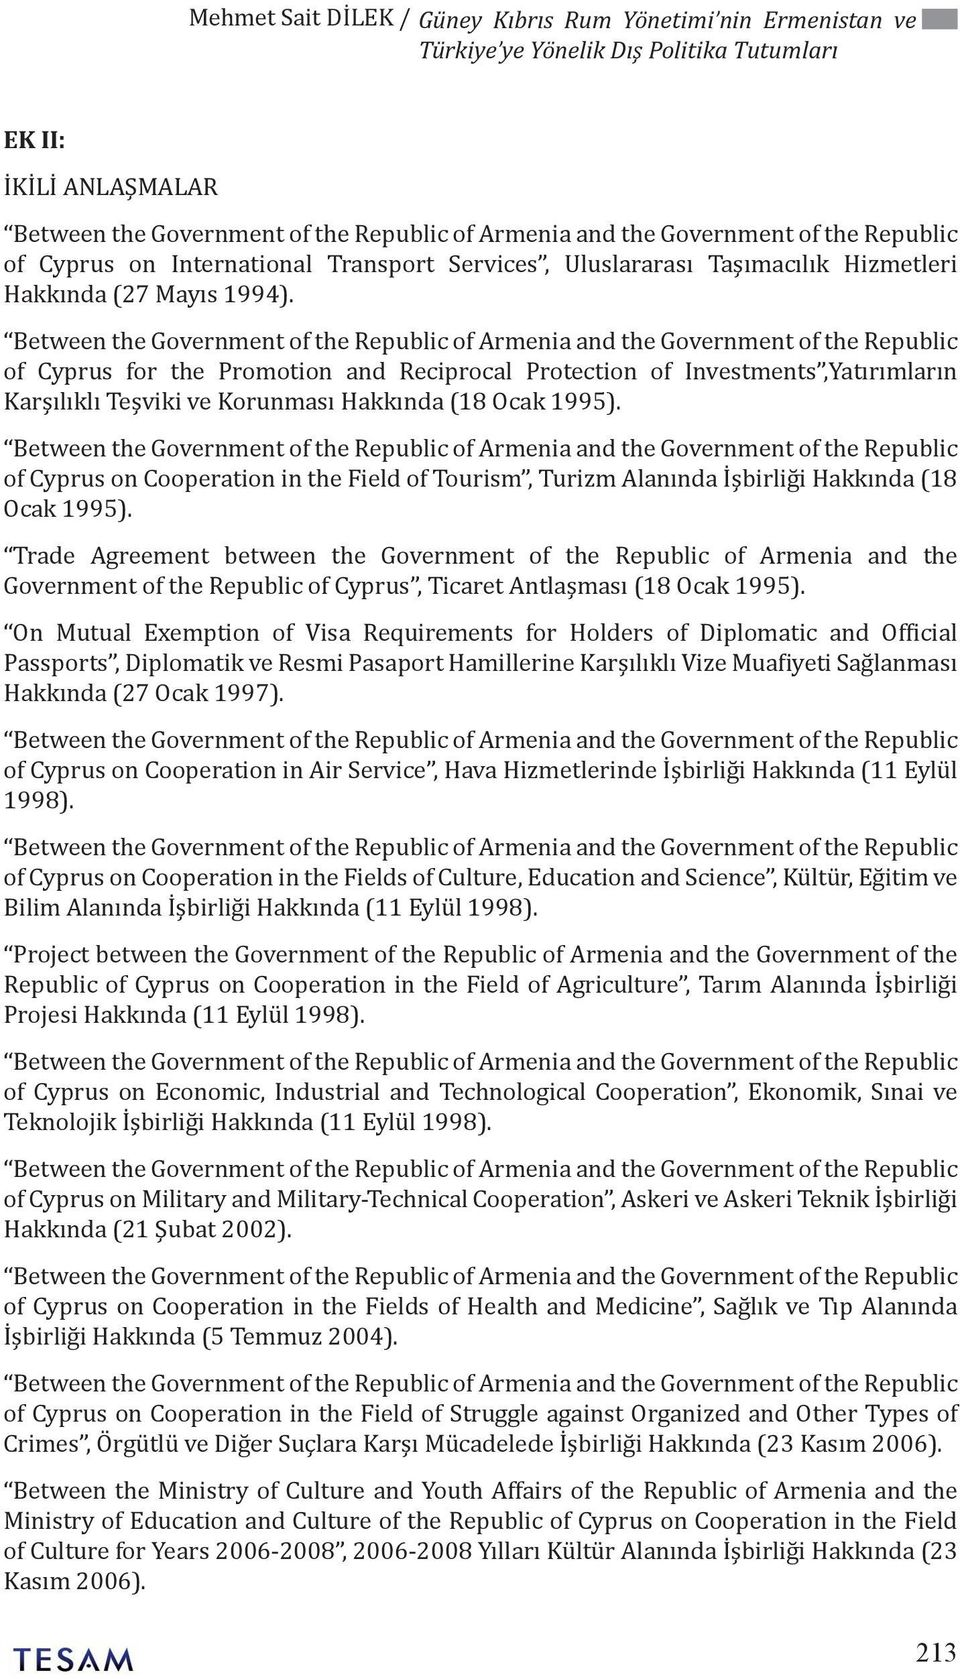 Between the Government of the Republic of Armenia and the Government of the Republic of Cyprus for the Promotion and Reciprocal Protection of Investments,Yatırımların Karşılıklı Teşviki ve Korunması